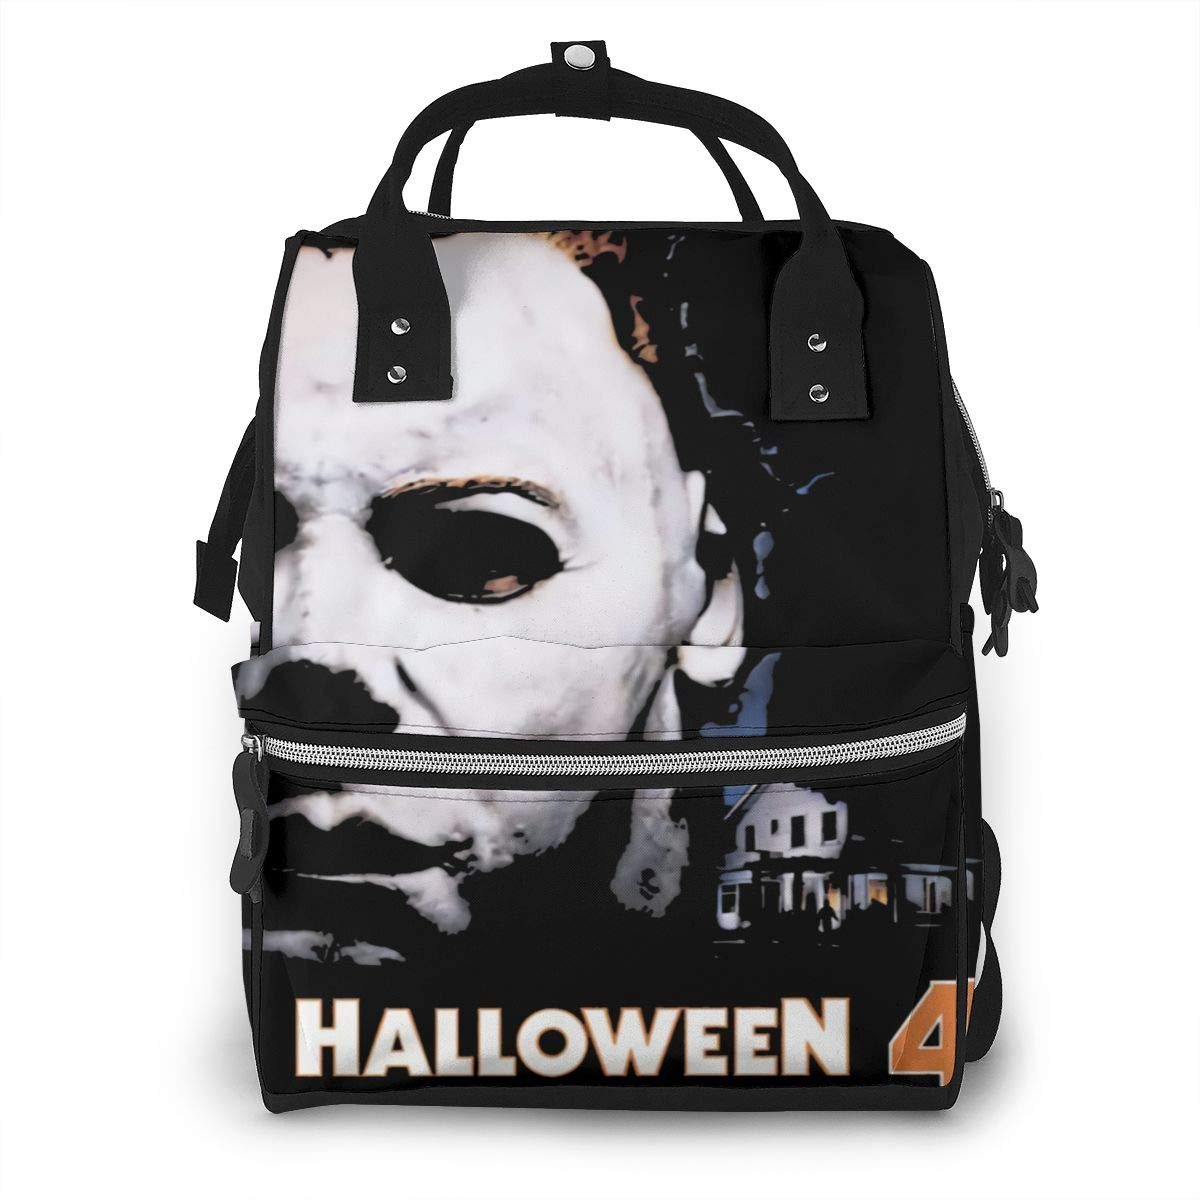 Halloween 4 The Return of Michael Myers Durable, Large Capacity, Stylish, Adjustable Strap Length Mummy Backpack